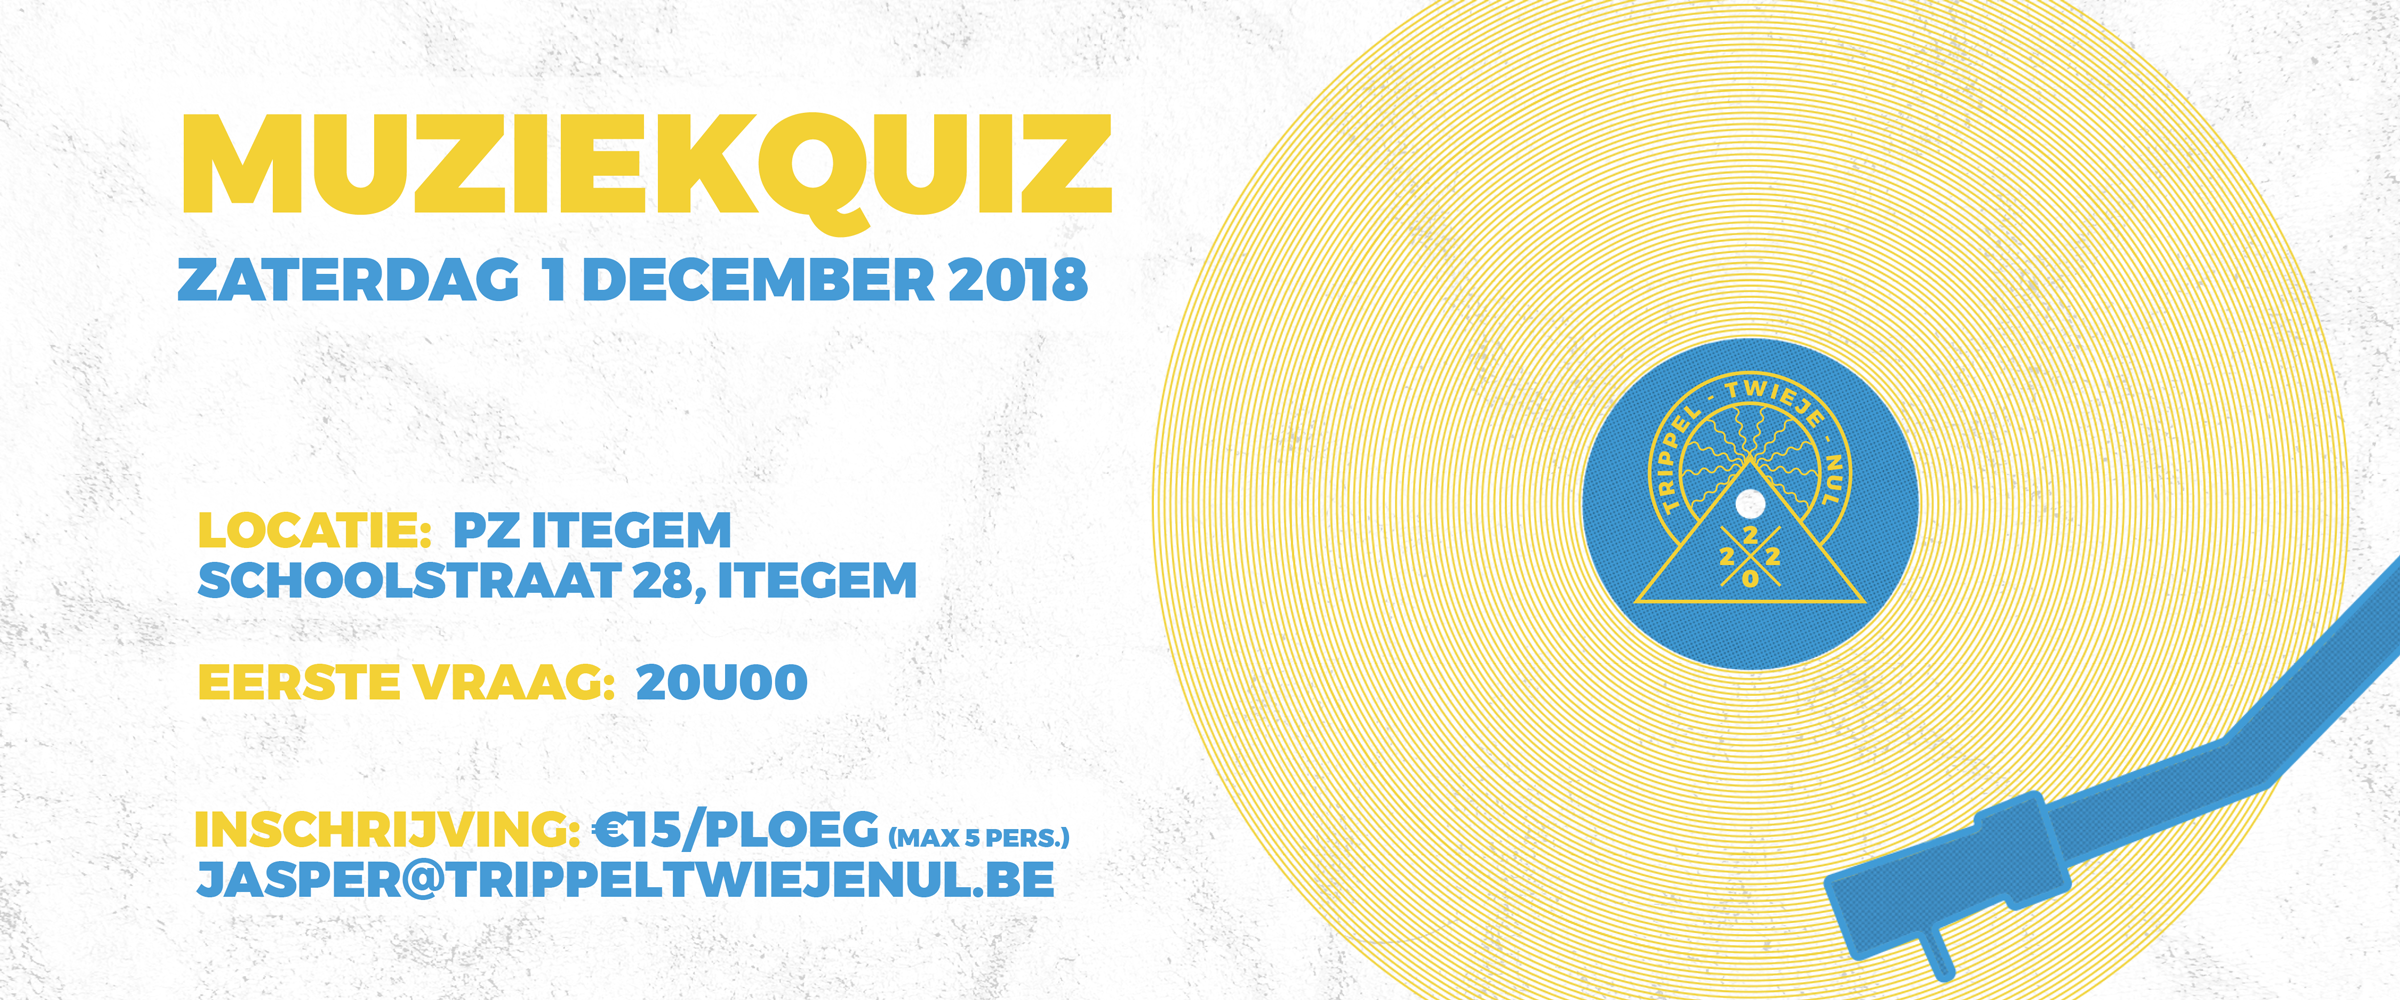 MuziekQuiz2018-Website